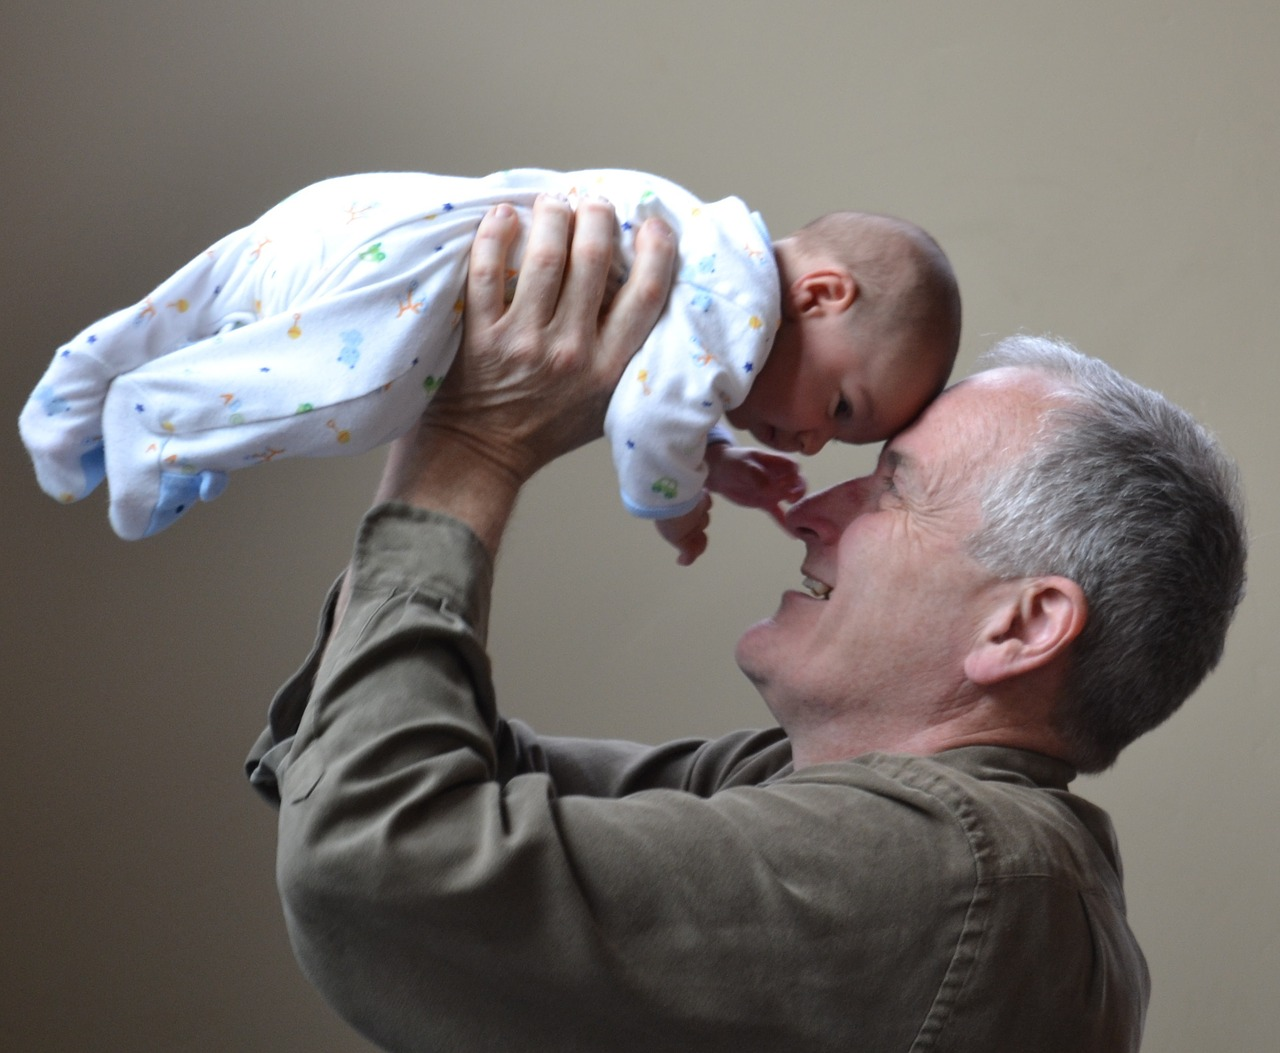 Many Latin American cultures also celebrate grandfathers on Father's Day.